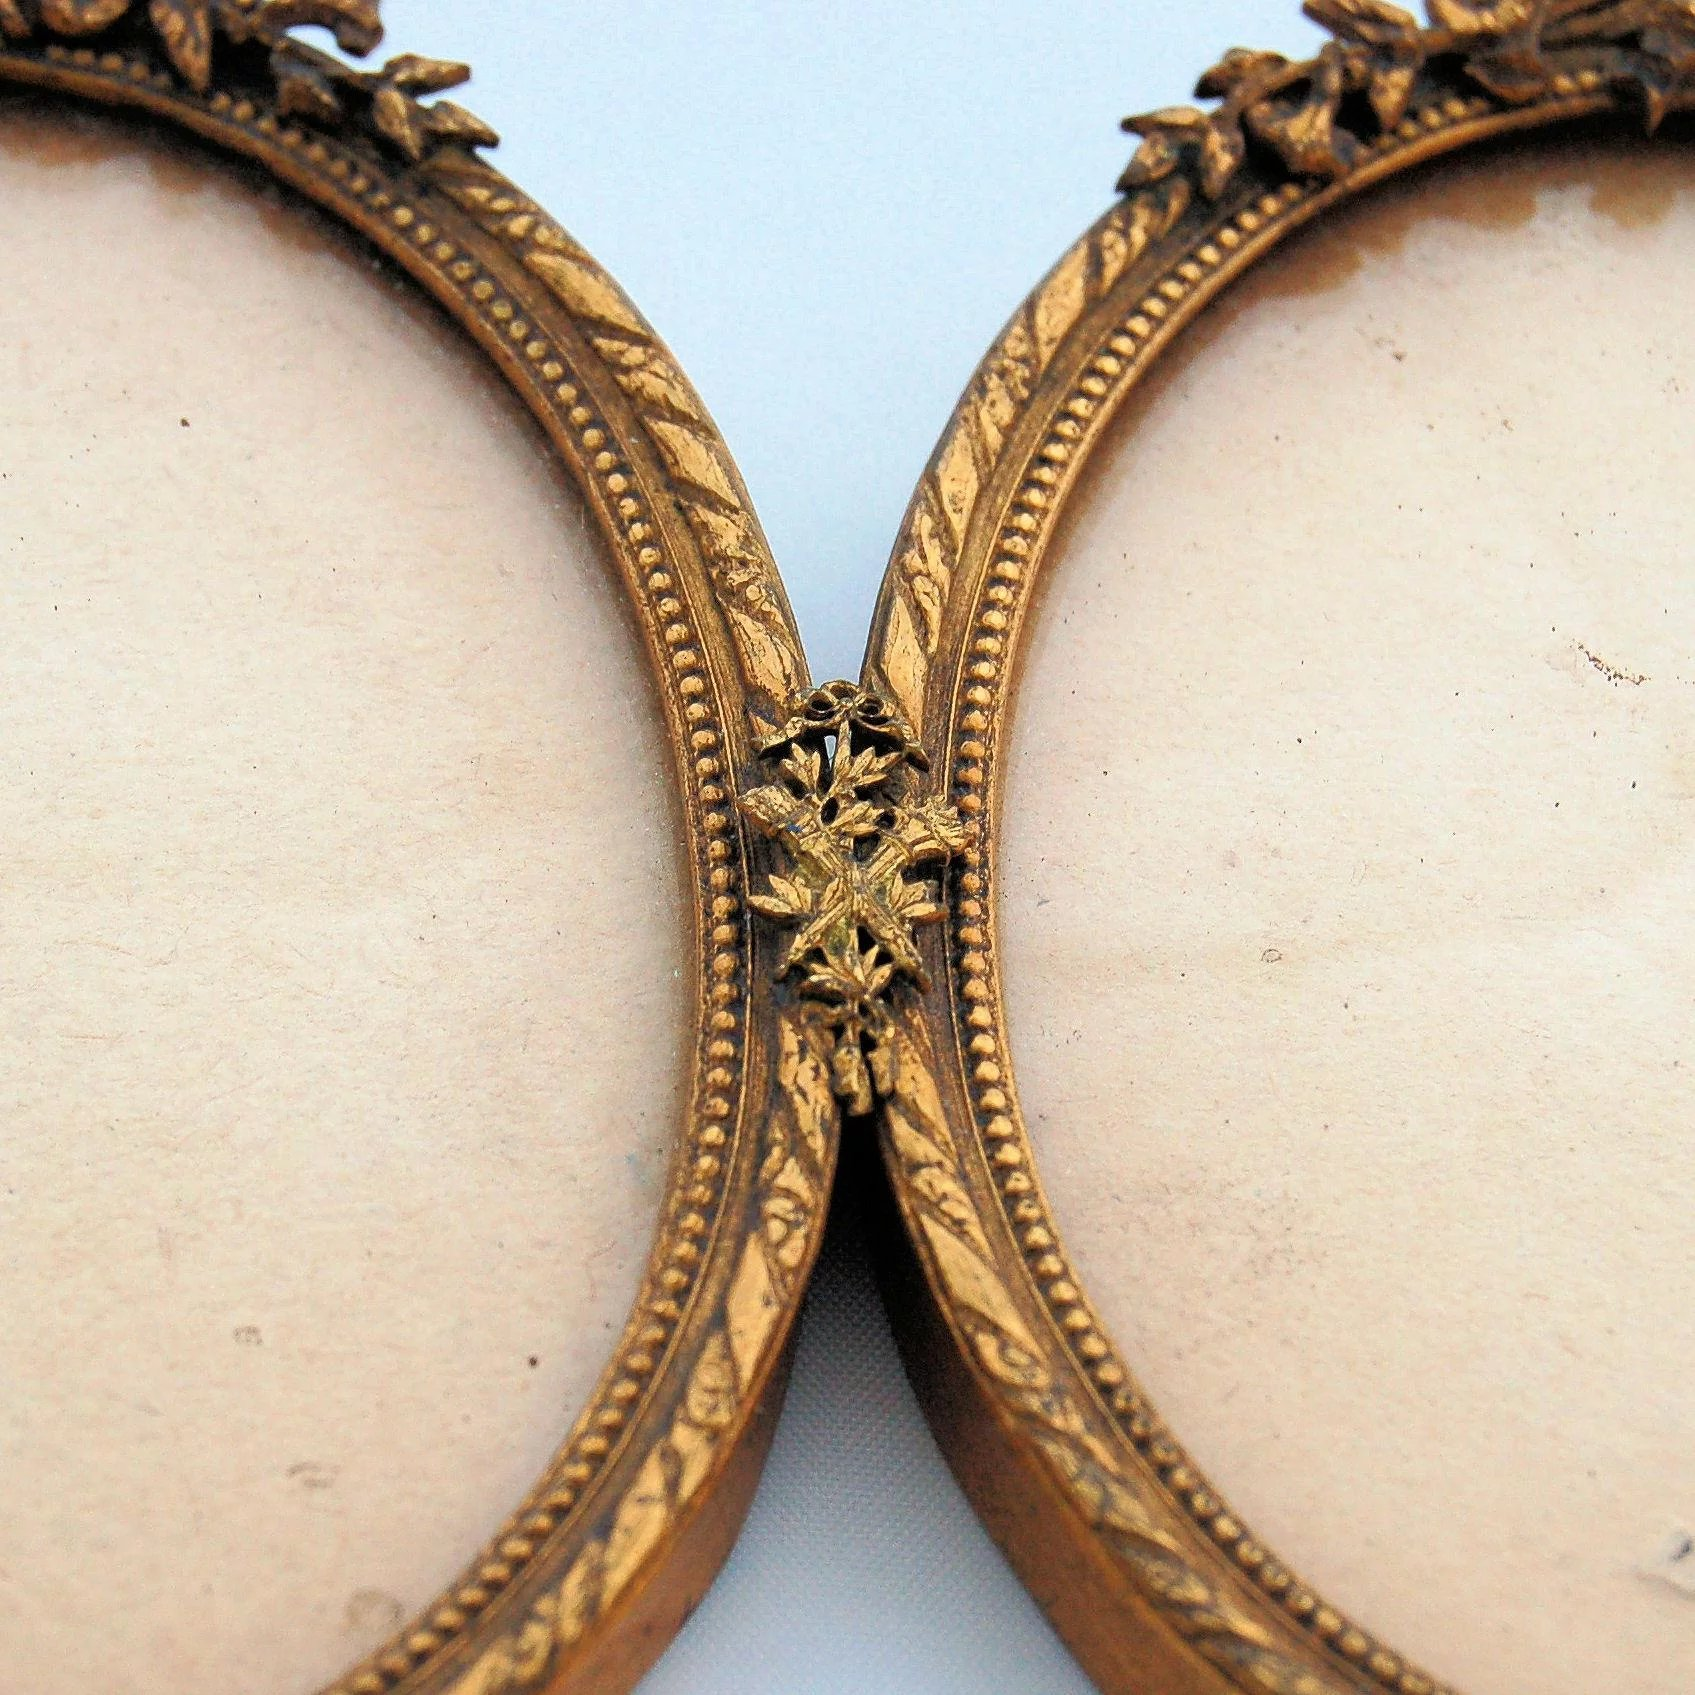 Antique French Bows and Ribbons Oval Frames Brass Ormolu 19th ...